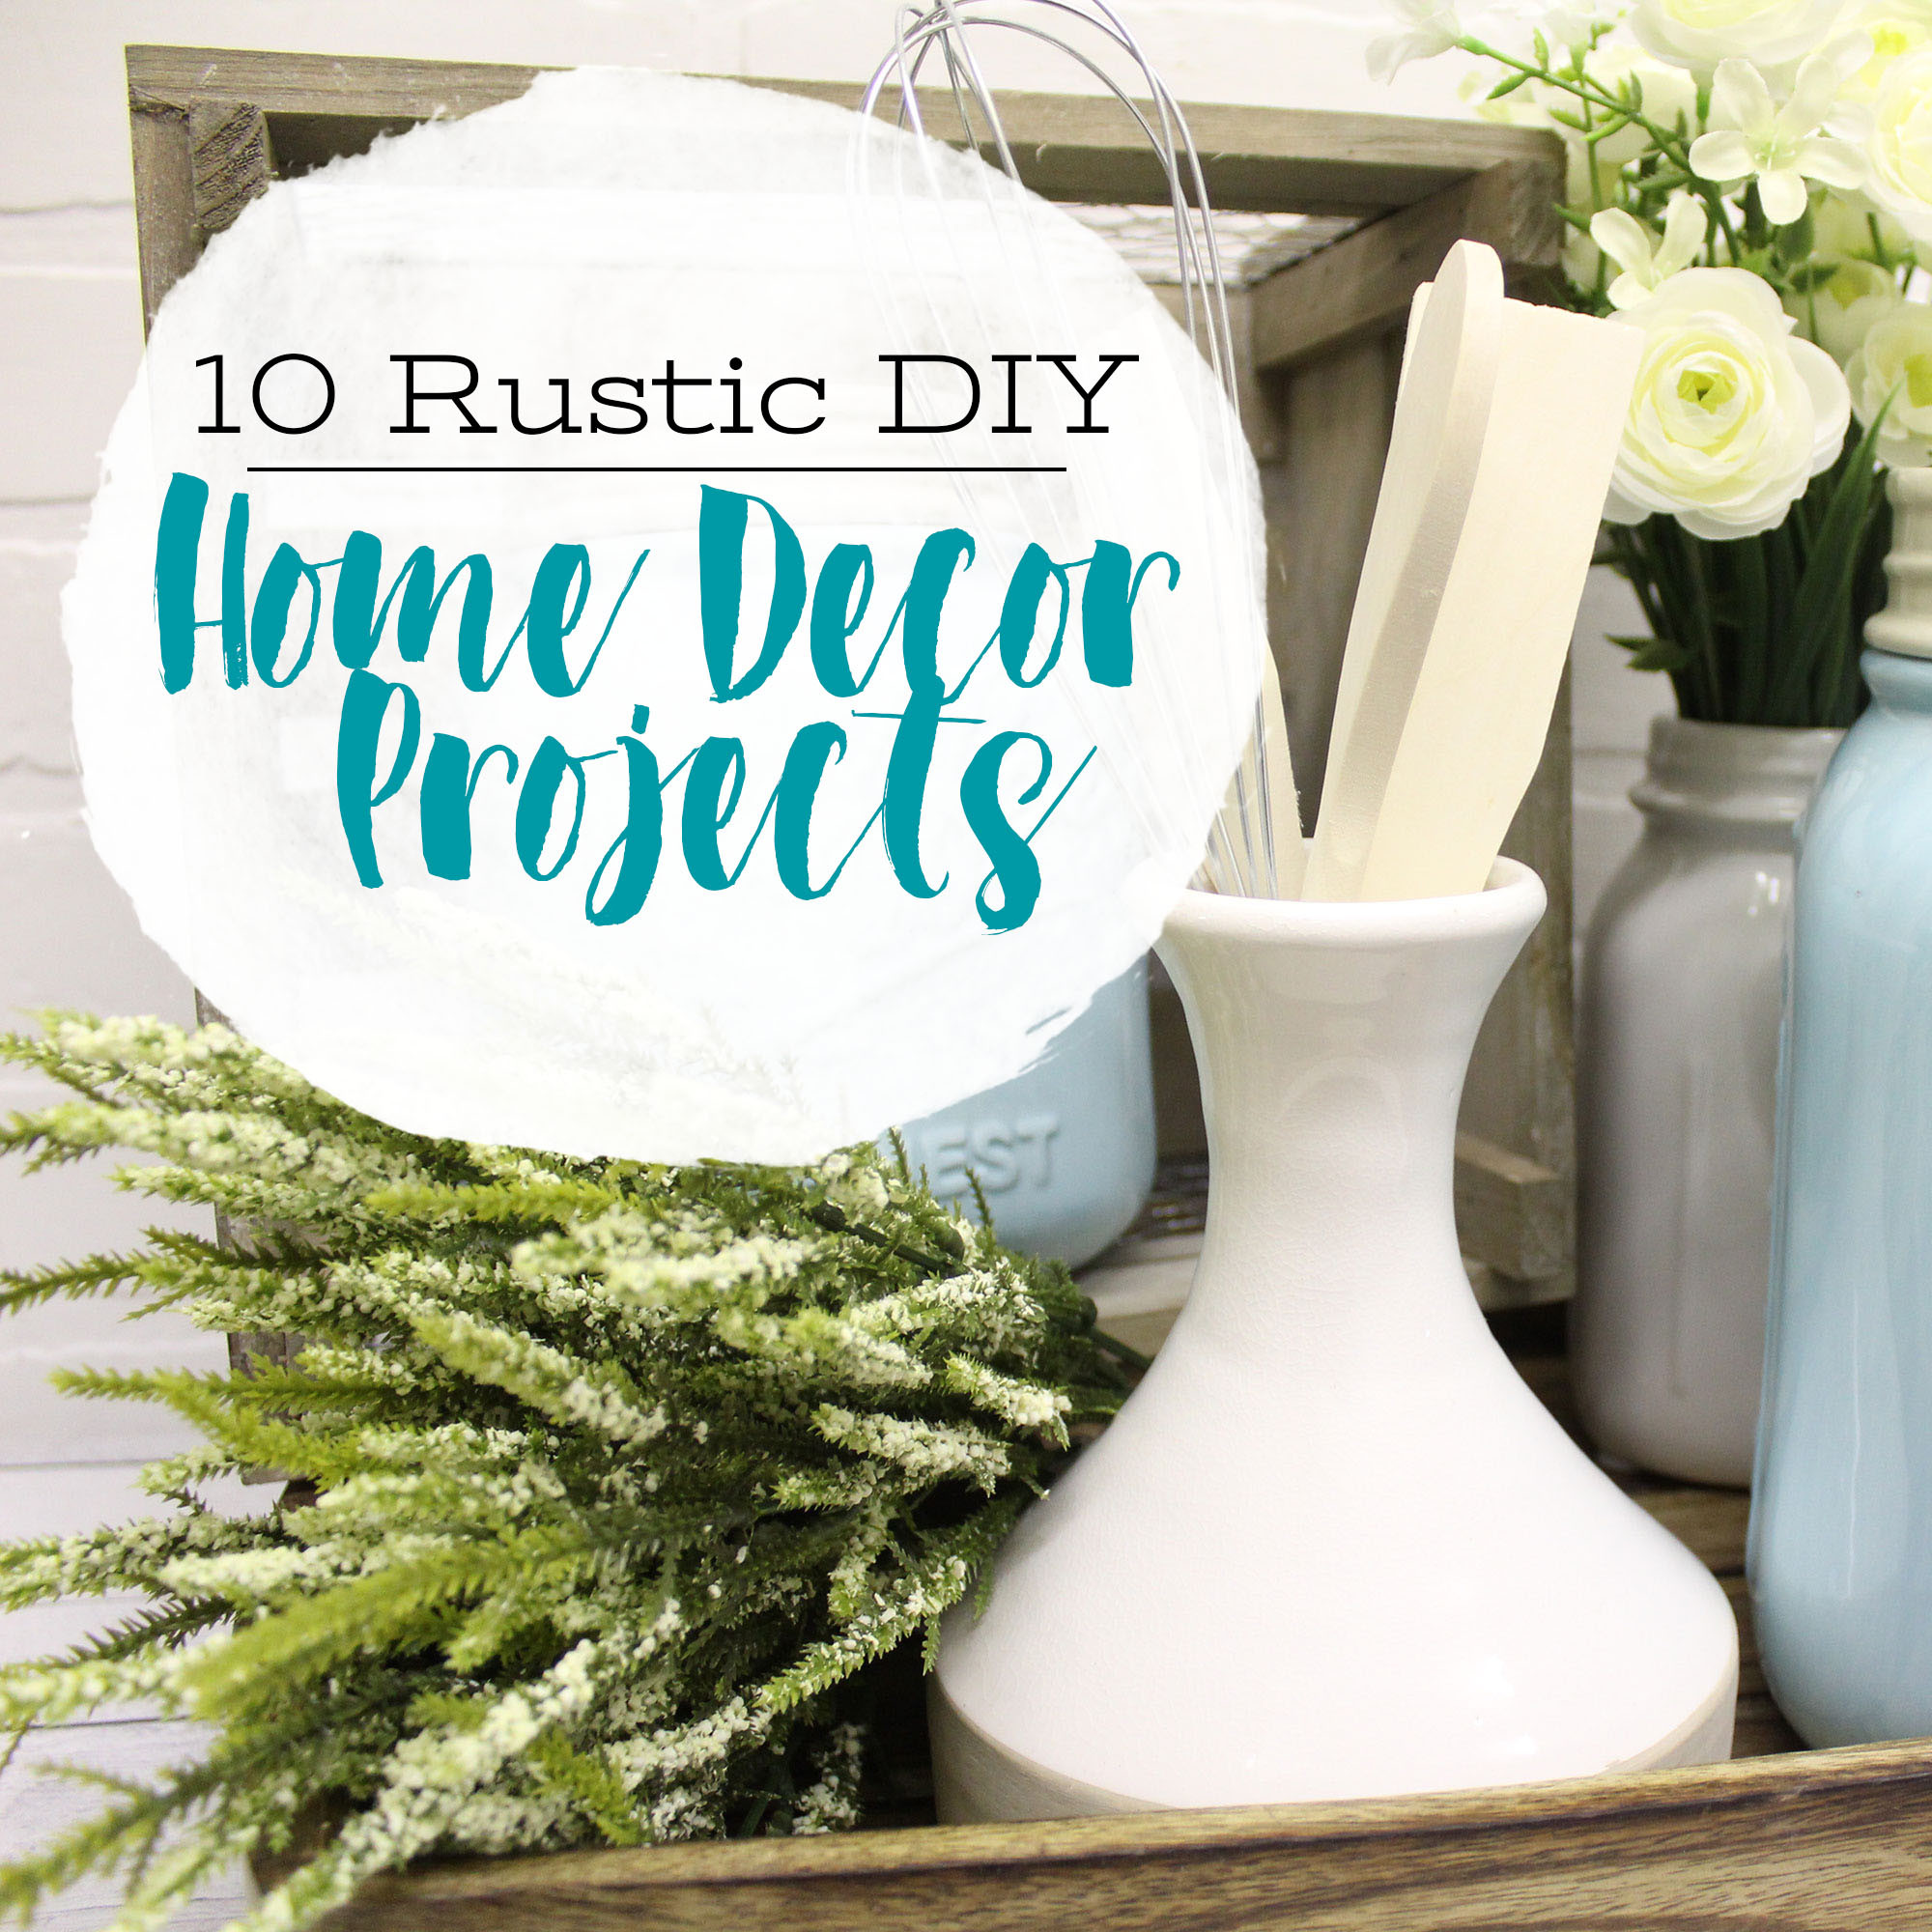 Best ideas about DIY Home Decor Blogs . Save or Pin 10 Rustic DIY Home Décor Projects We Know You'll Love Now.